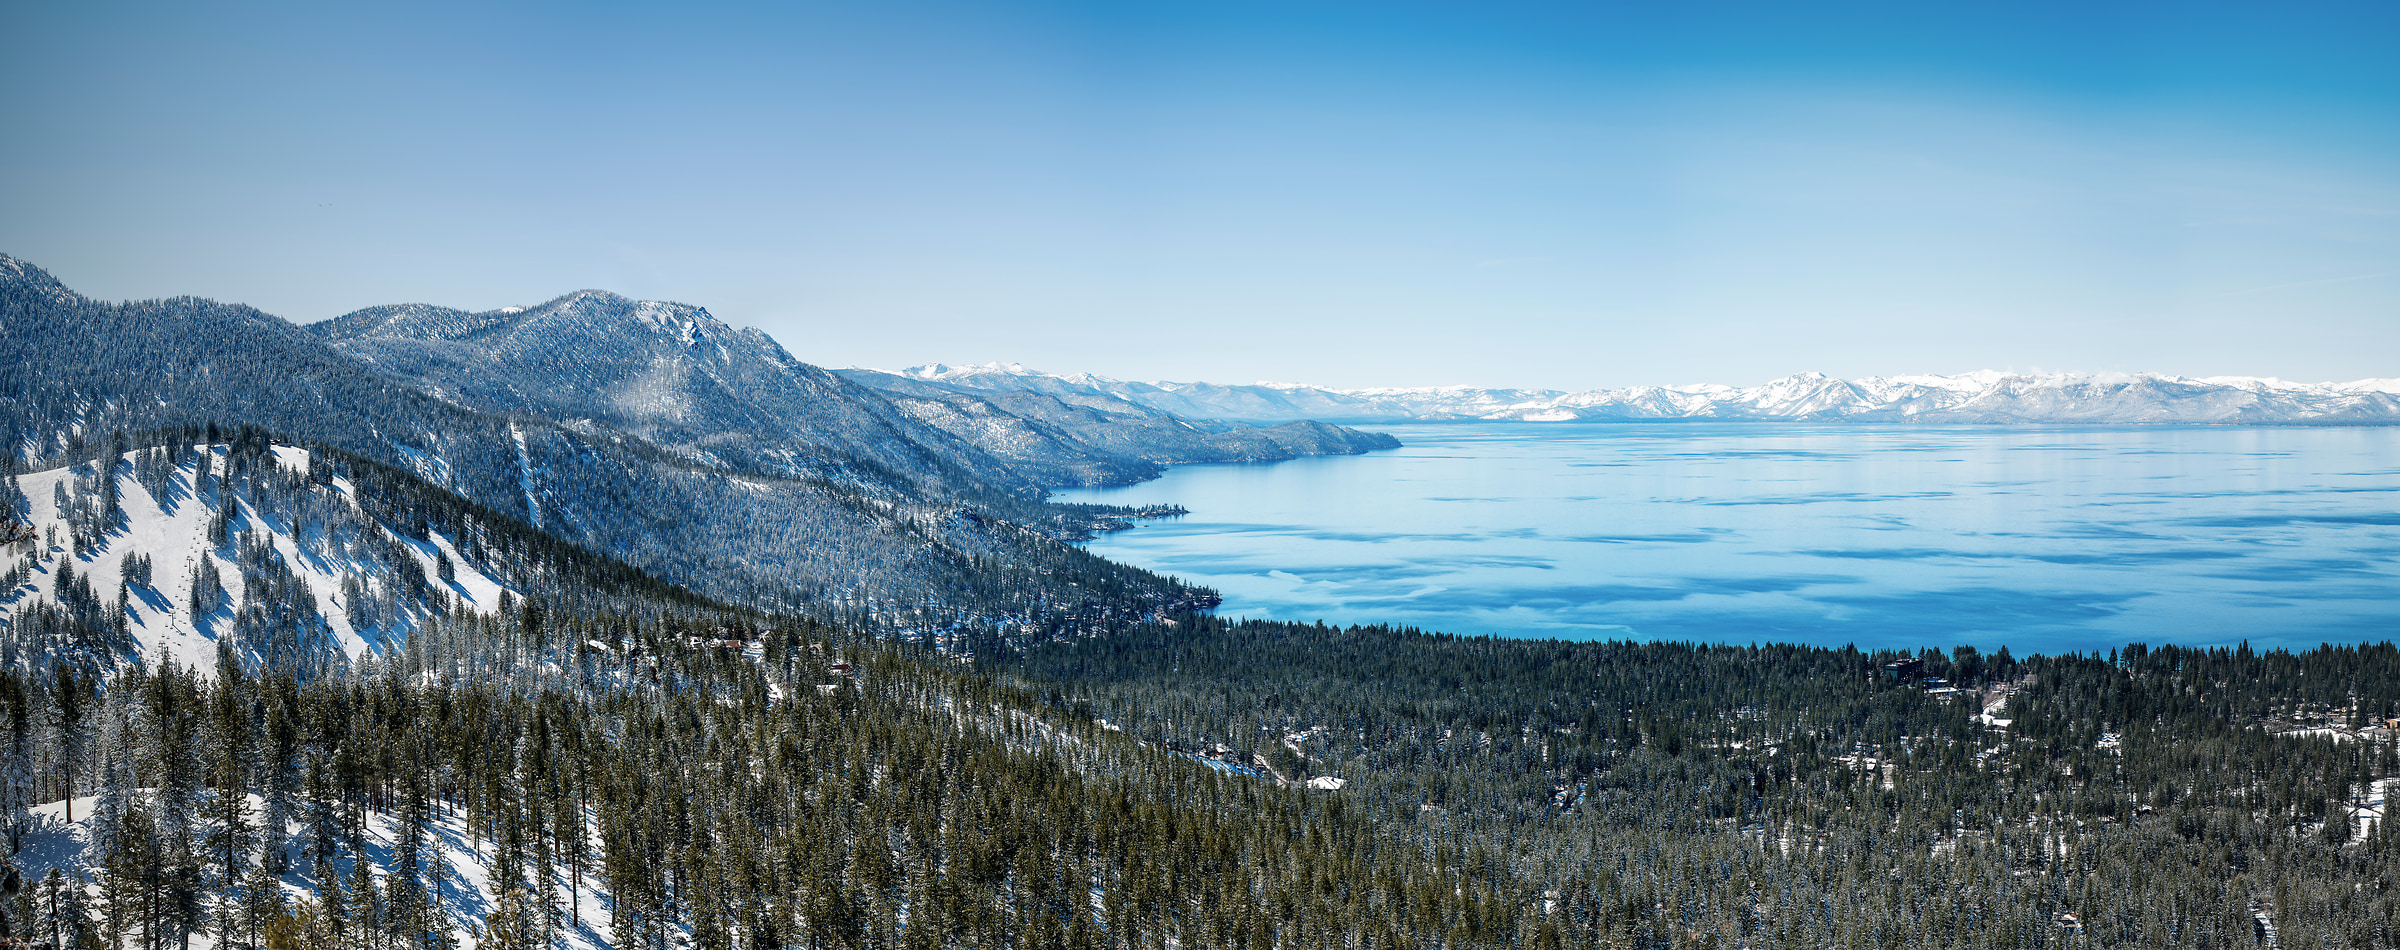 403 megapixels! A very high resolution, large-format VAST photo of Lake Tahoe in winter with snow; fine art landscape photograph created by Justin Katz from Mount Rose Highway in Nevada